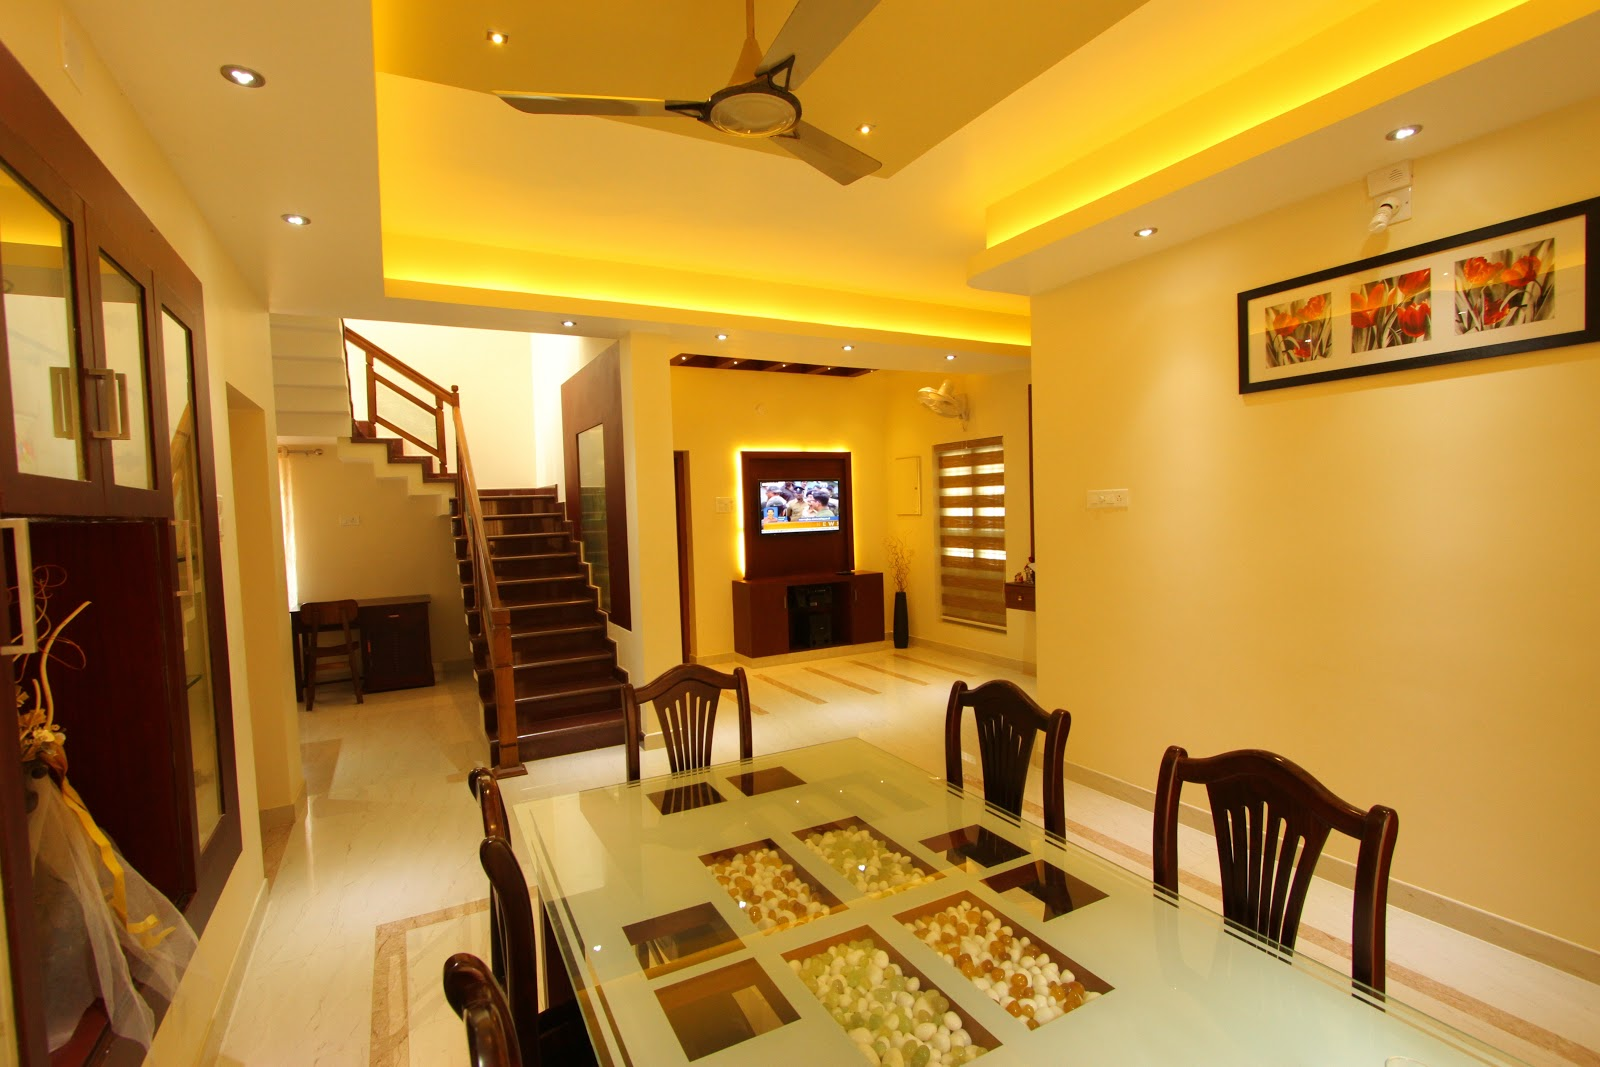 Shilpakala interiors award winning home interior design for Home dining hall design